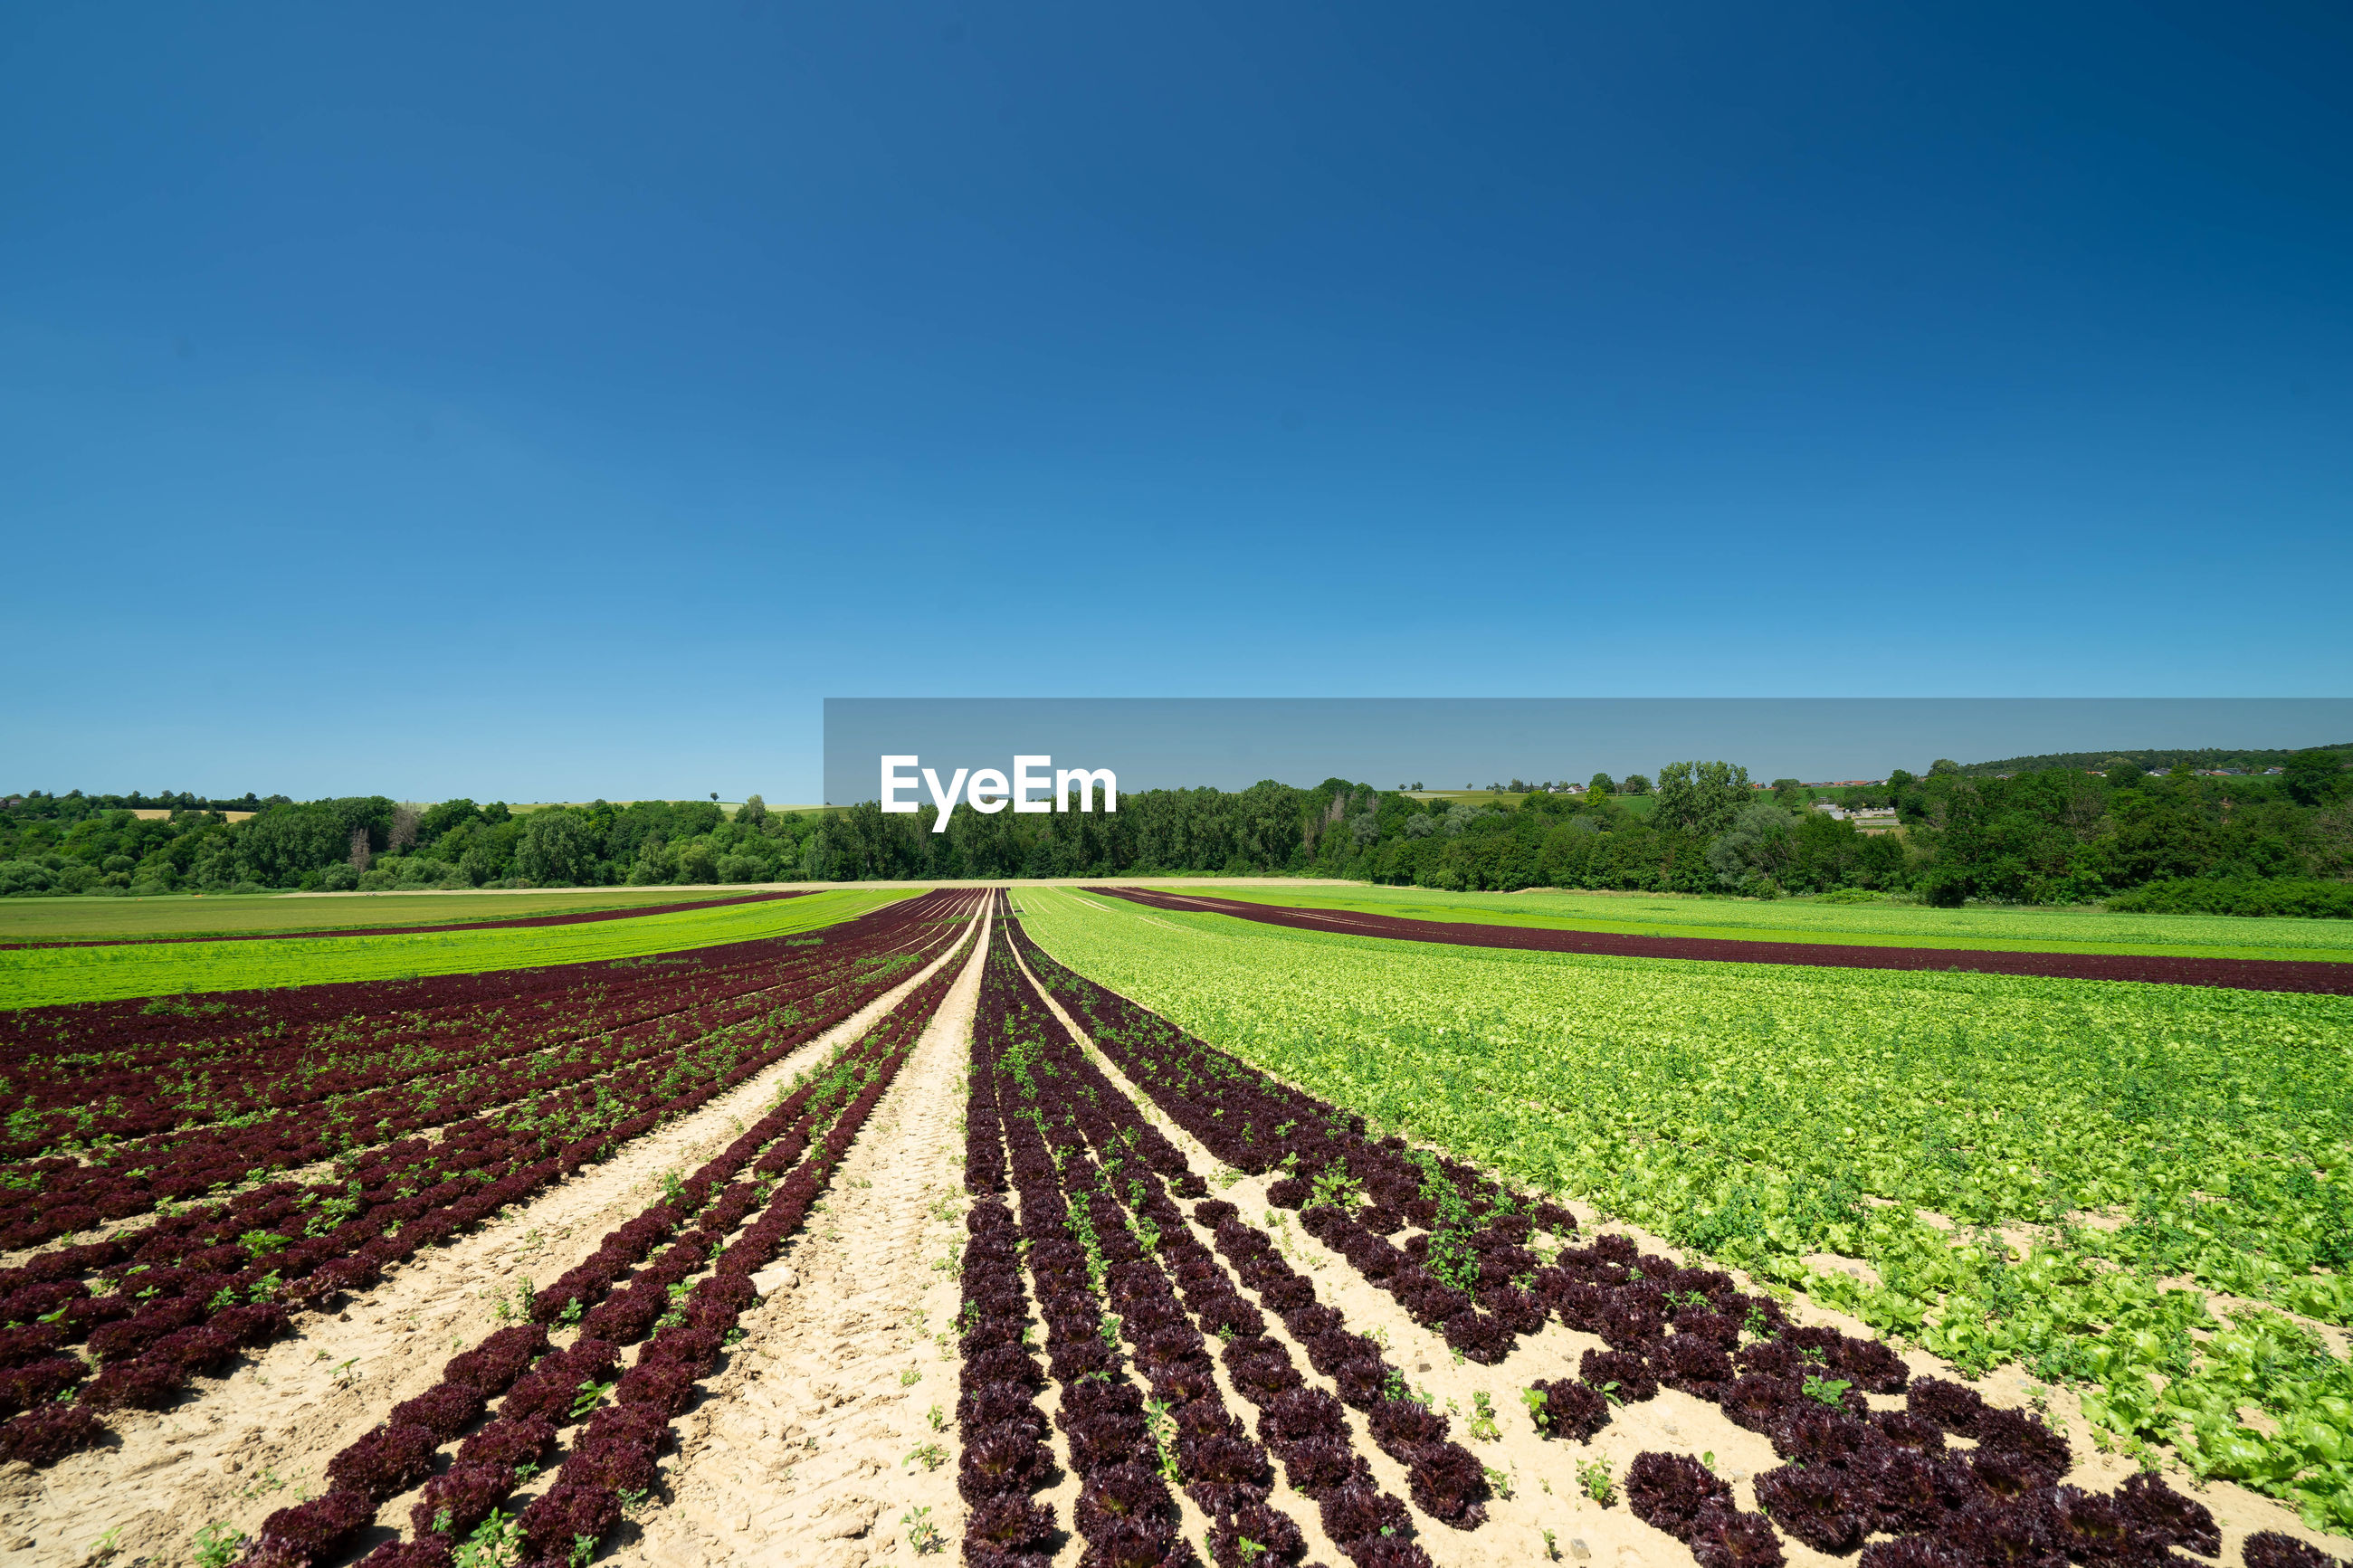 AGRICULTURAL FIELD AGAINST CLEAR BLUE SKY